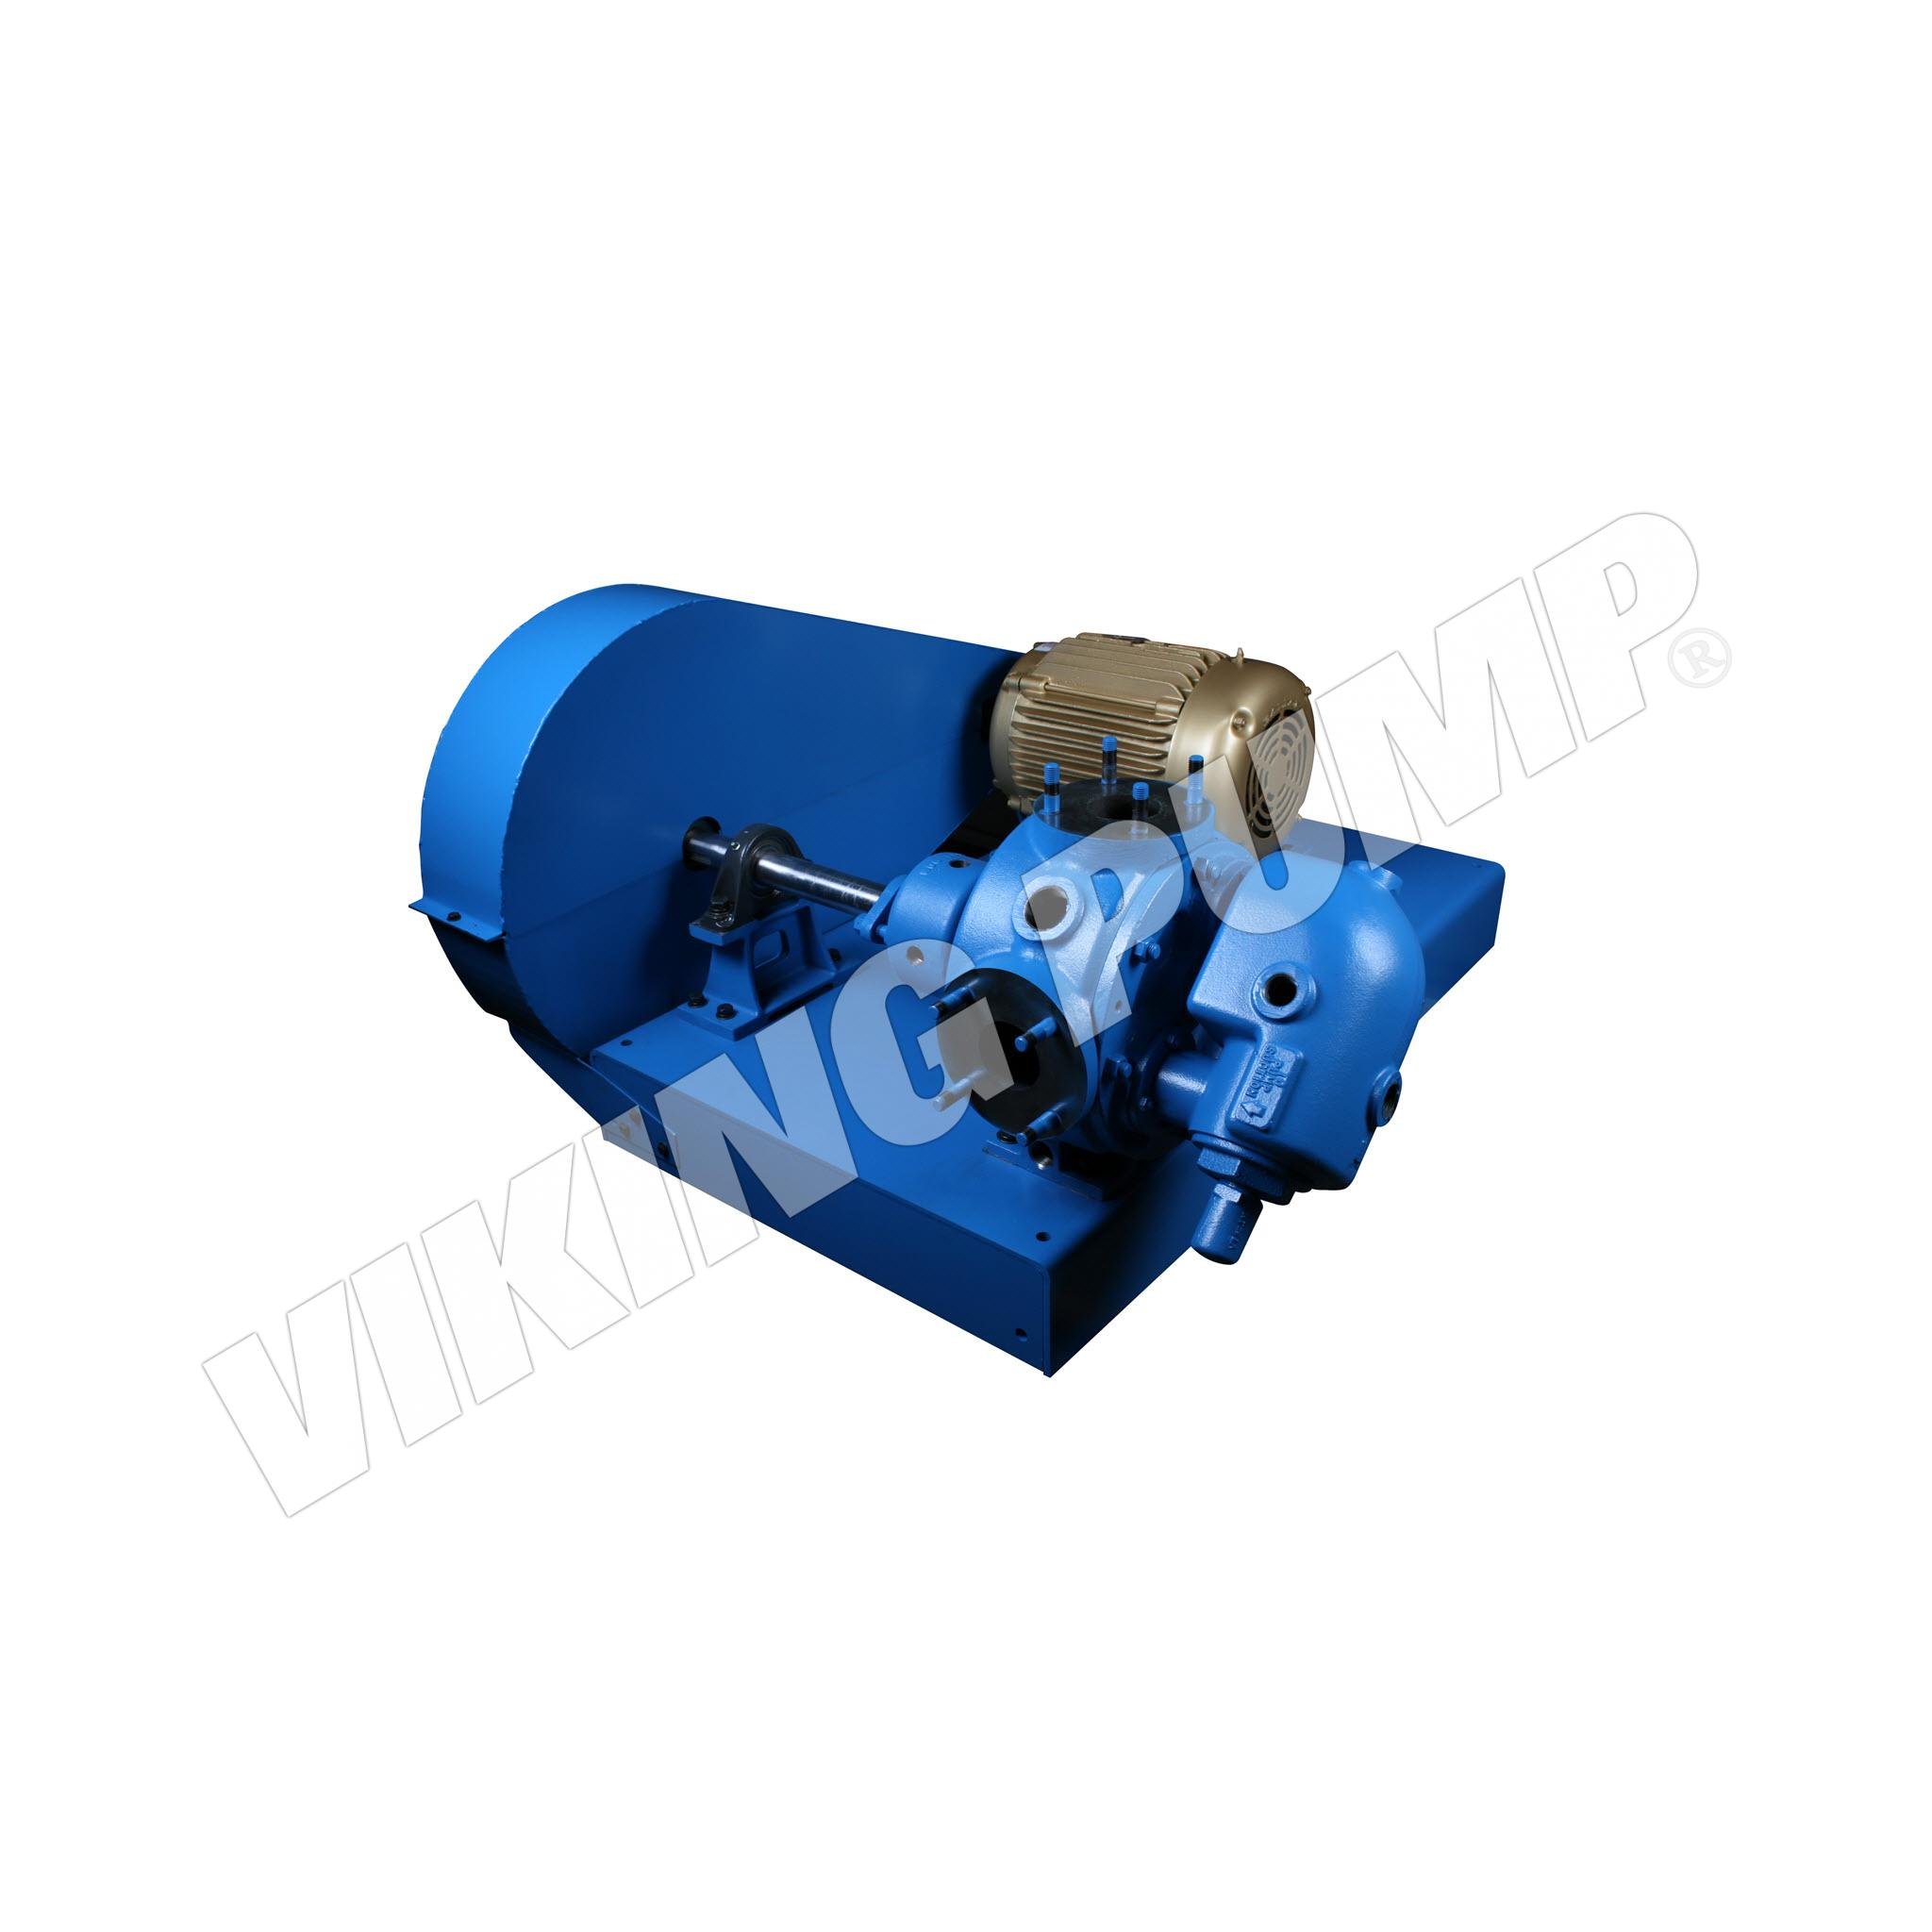 Model Q34, Jacketed Relief Valve, V Drive Unit